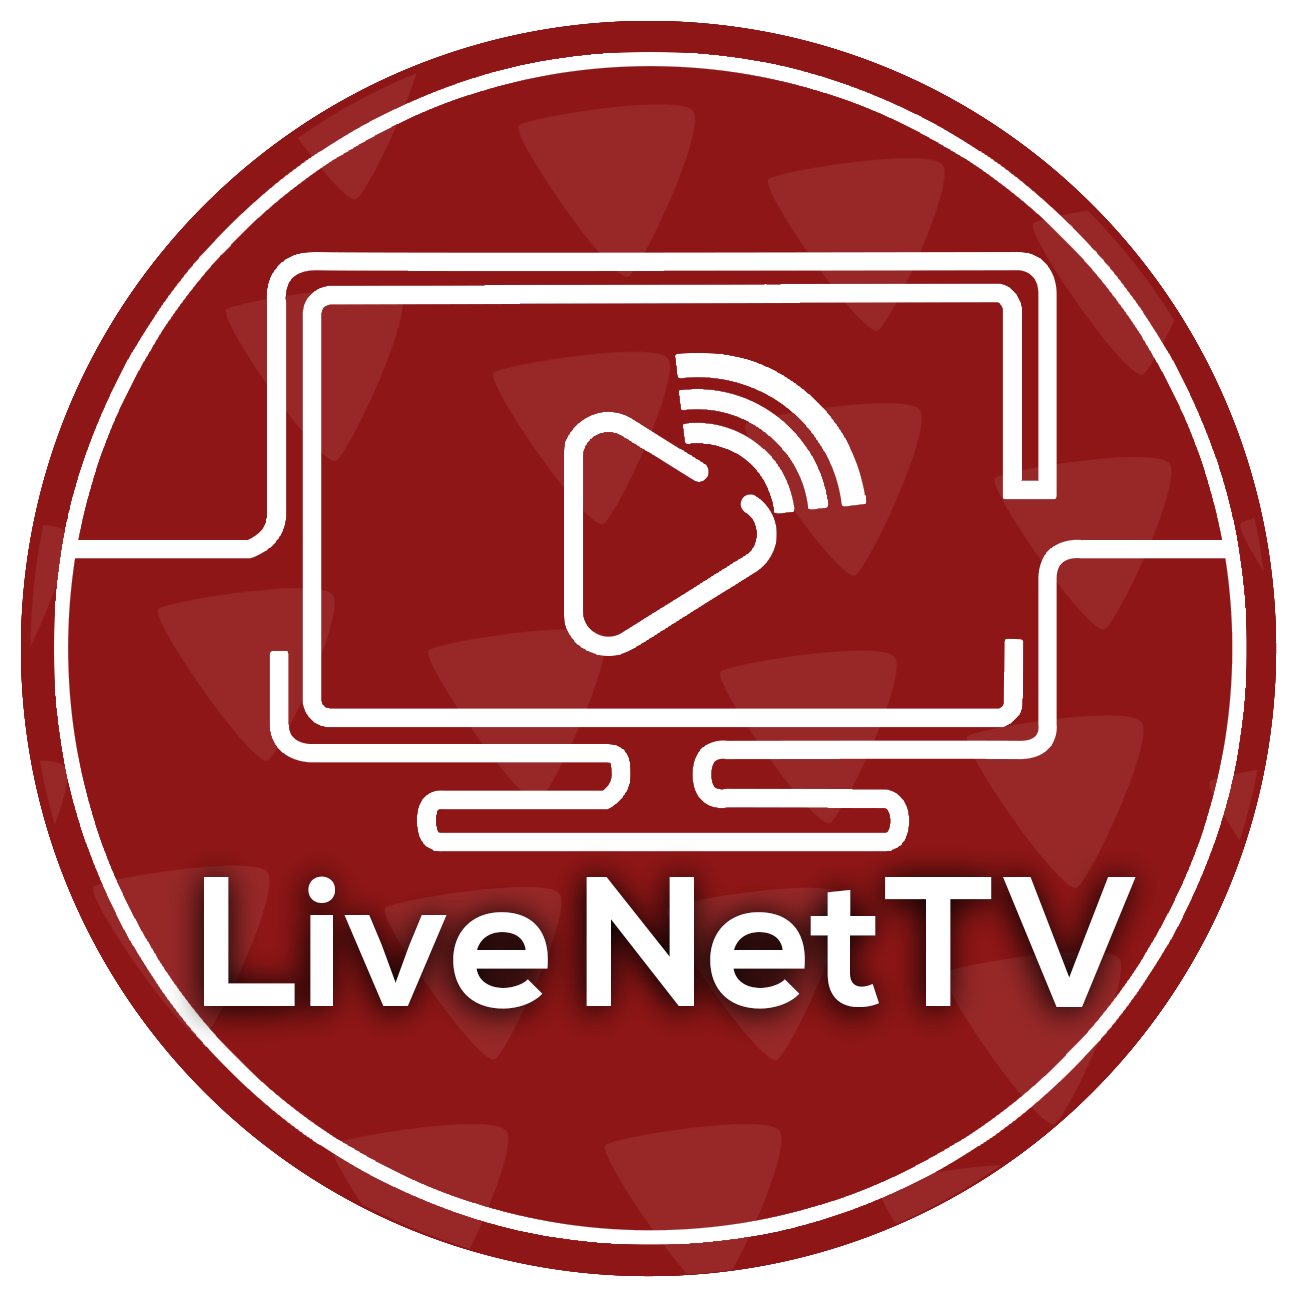 Live NetTV [OFFICIAL Website] - Download Live NetTV 4 7 APK